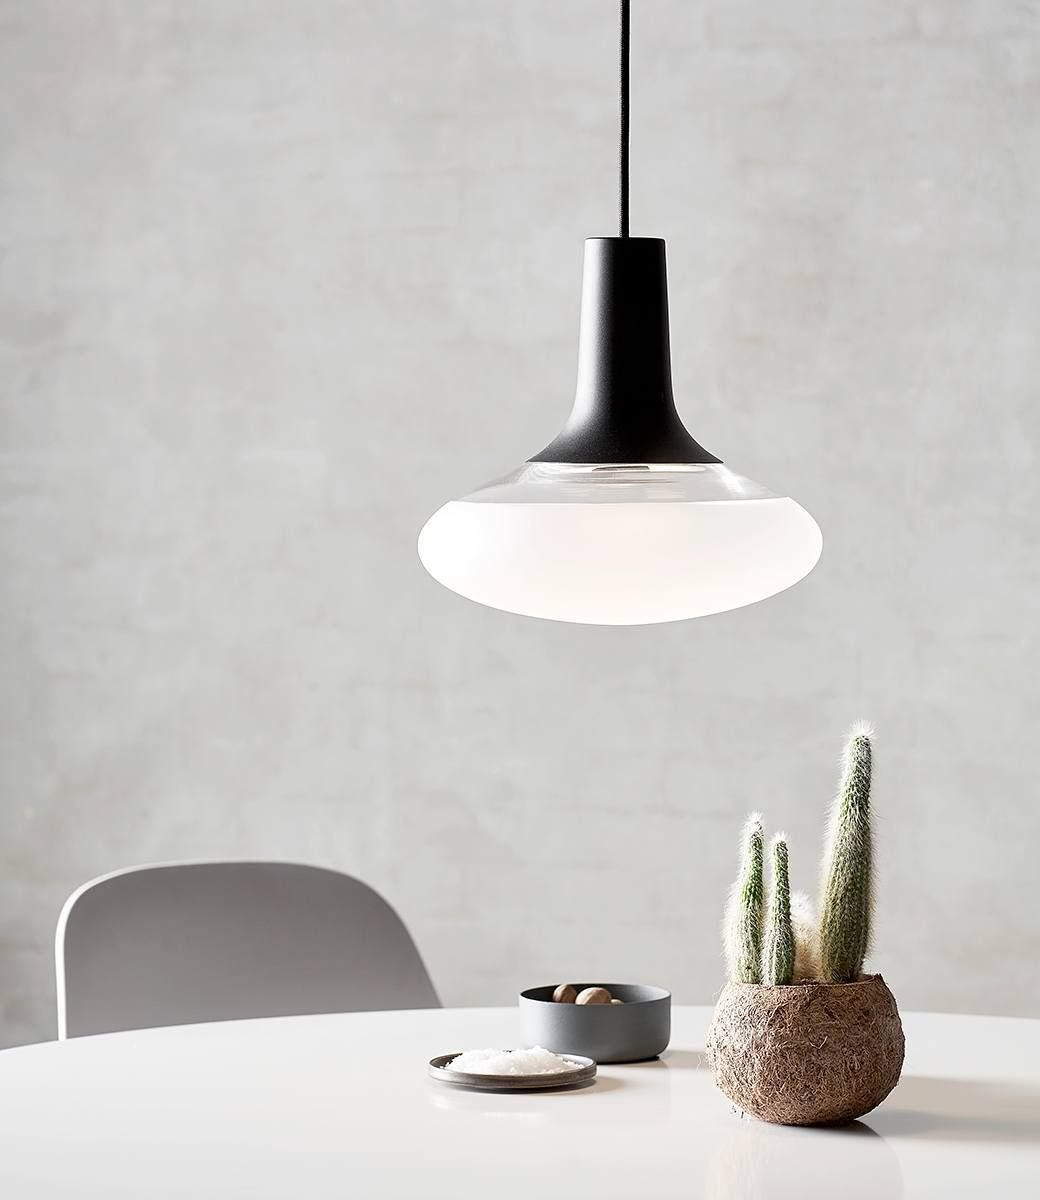 Please Welcome The New Dee 2 Glass Pendant Bonnelyckemdd Has Worked With The Shape Of The Beautiful Glass D Lamp Design Scandinavian Interior Nordic Design